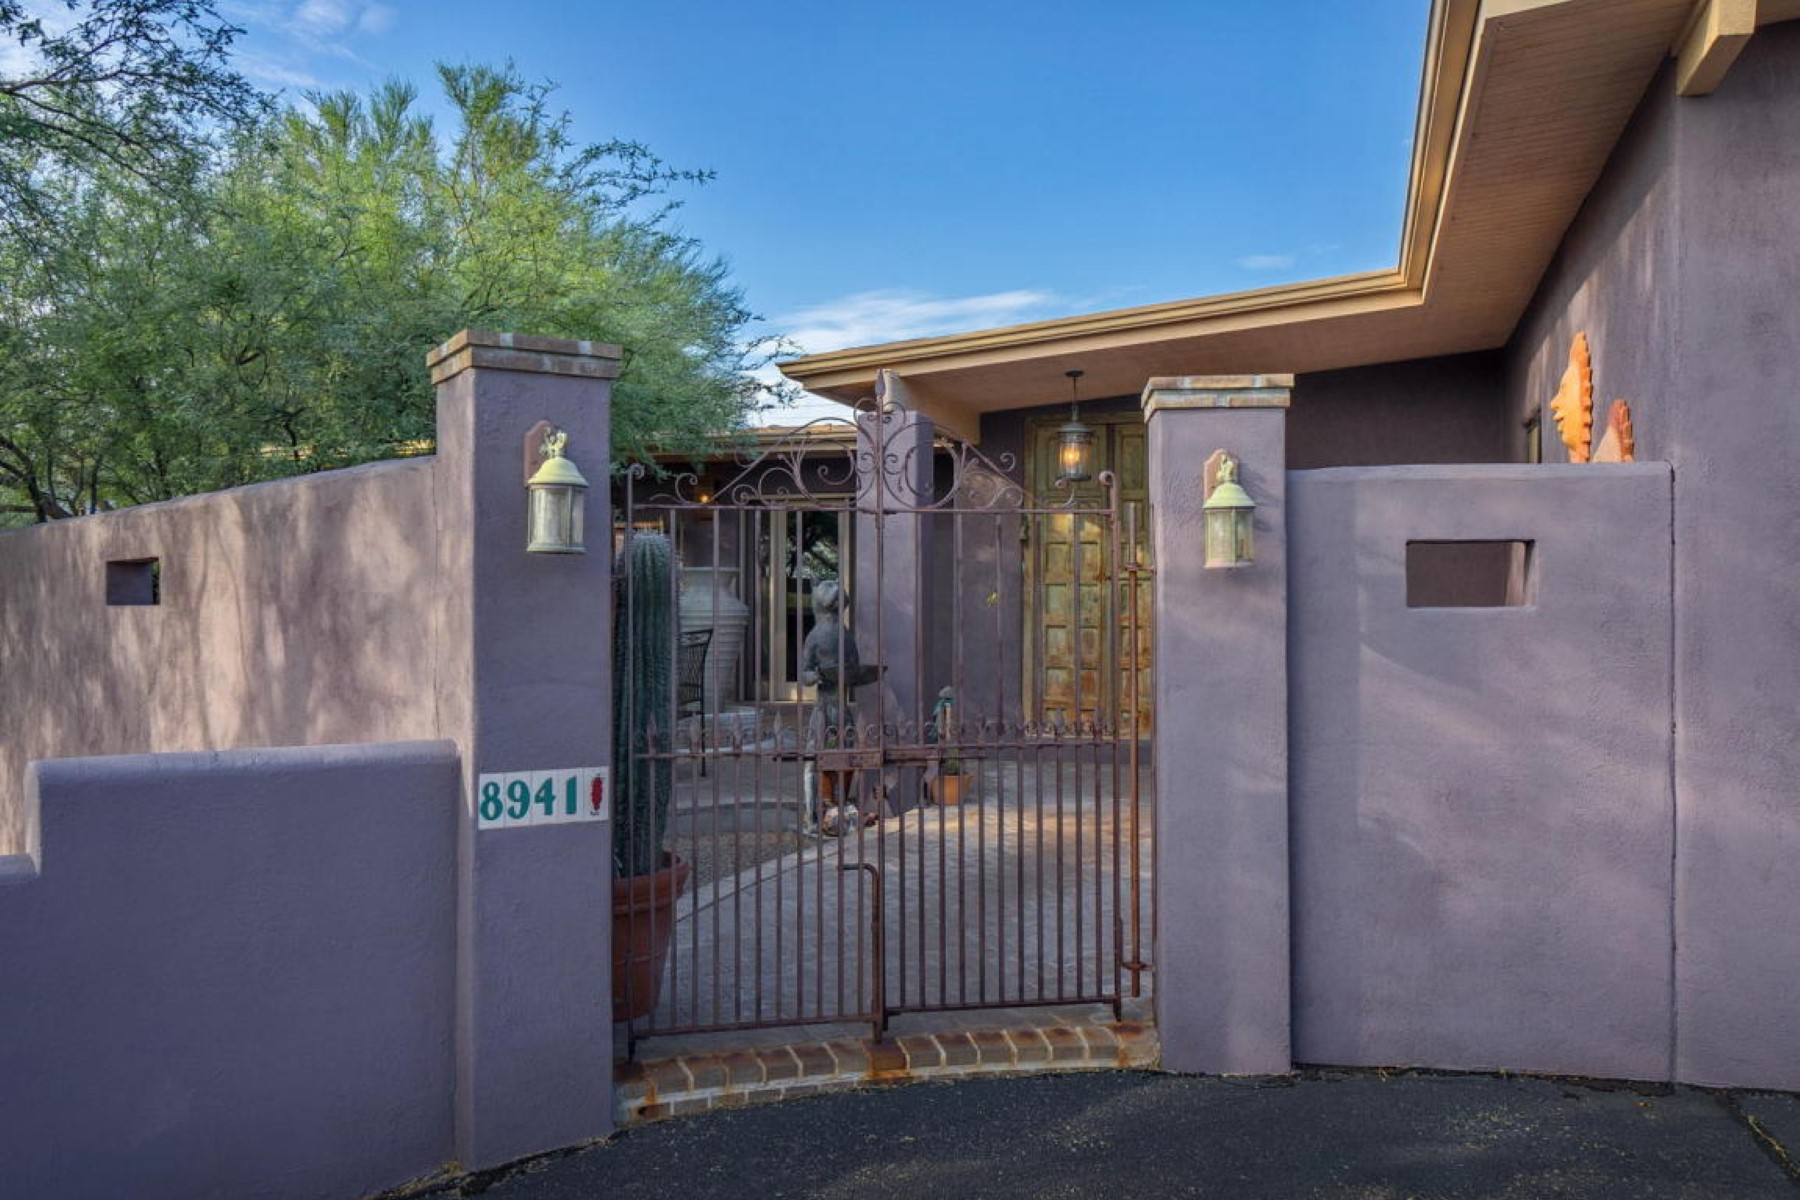 Single Family Home for Sale at Magical and special property in Tucson 8941 E Summer Tr Trail Tucson, Arizona 85749 United States